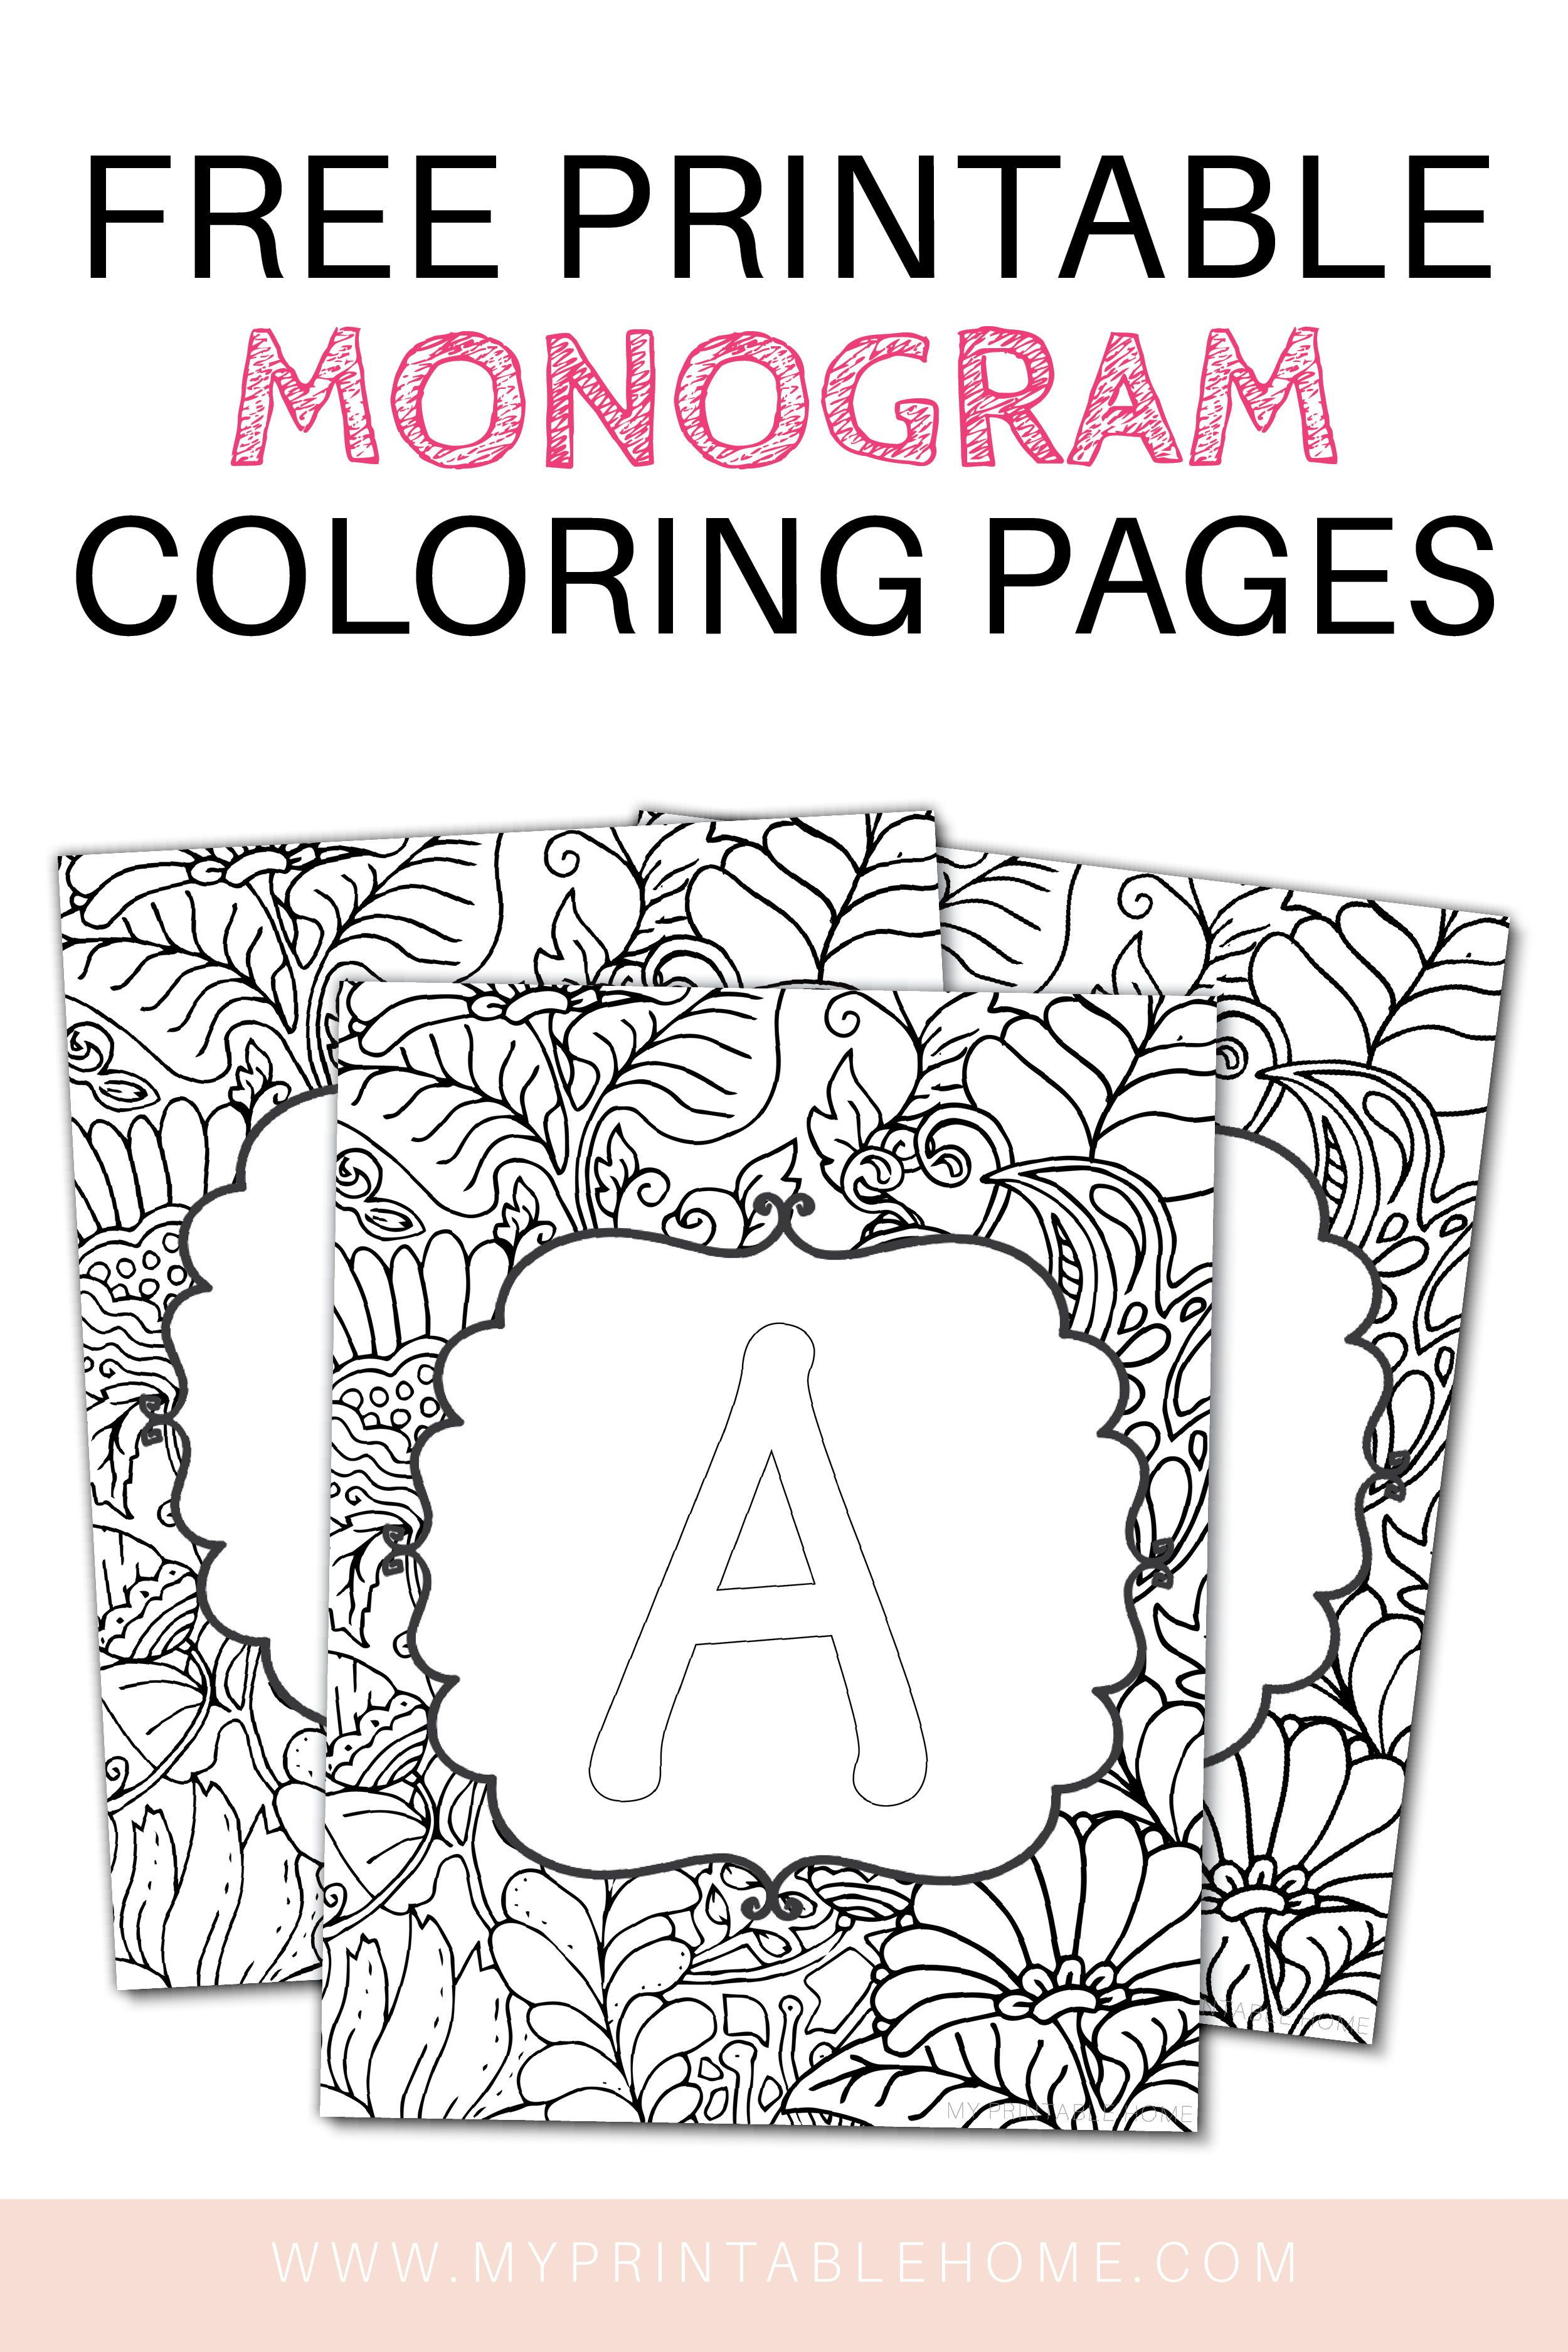 Download Your Free Printable Monogram Coloring Pages Contains The Alphabet Plus 0 9 Numbers Great F Free Printable Monogram Monogram Printable Coloring Pages